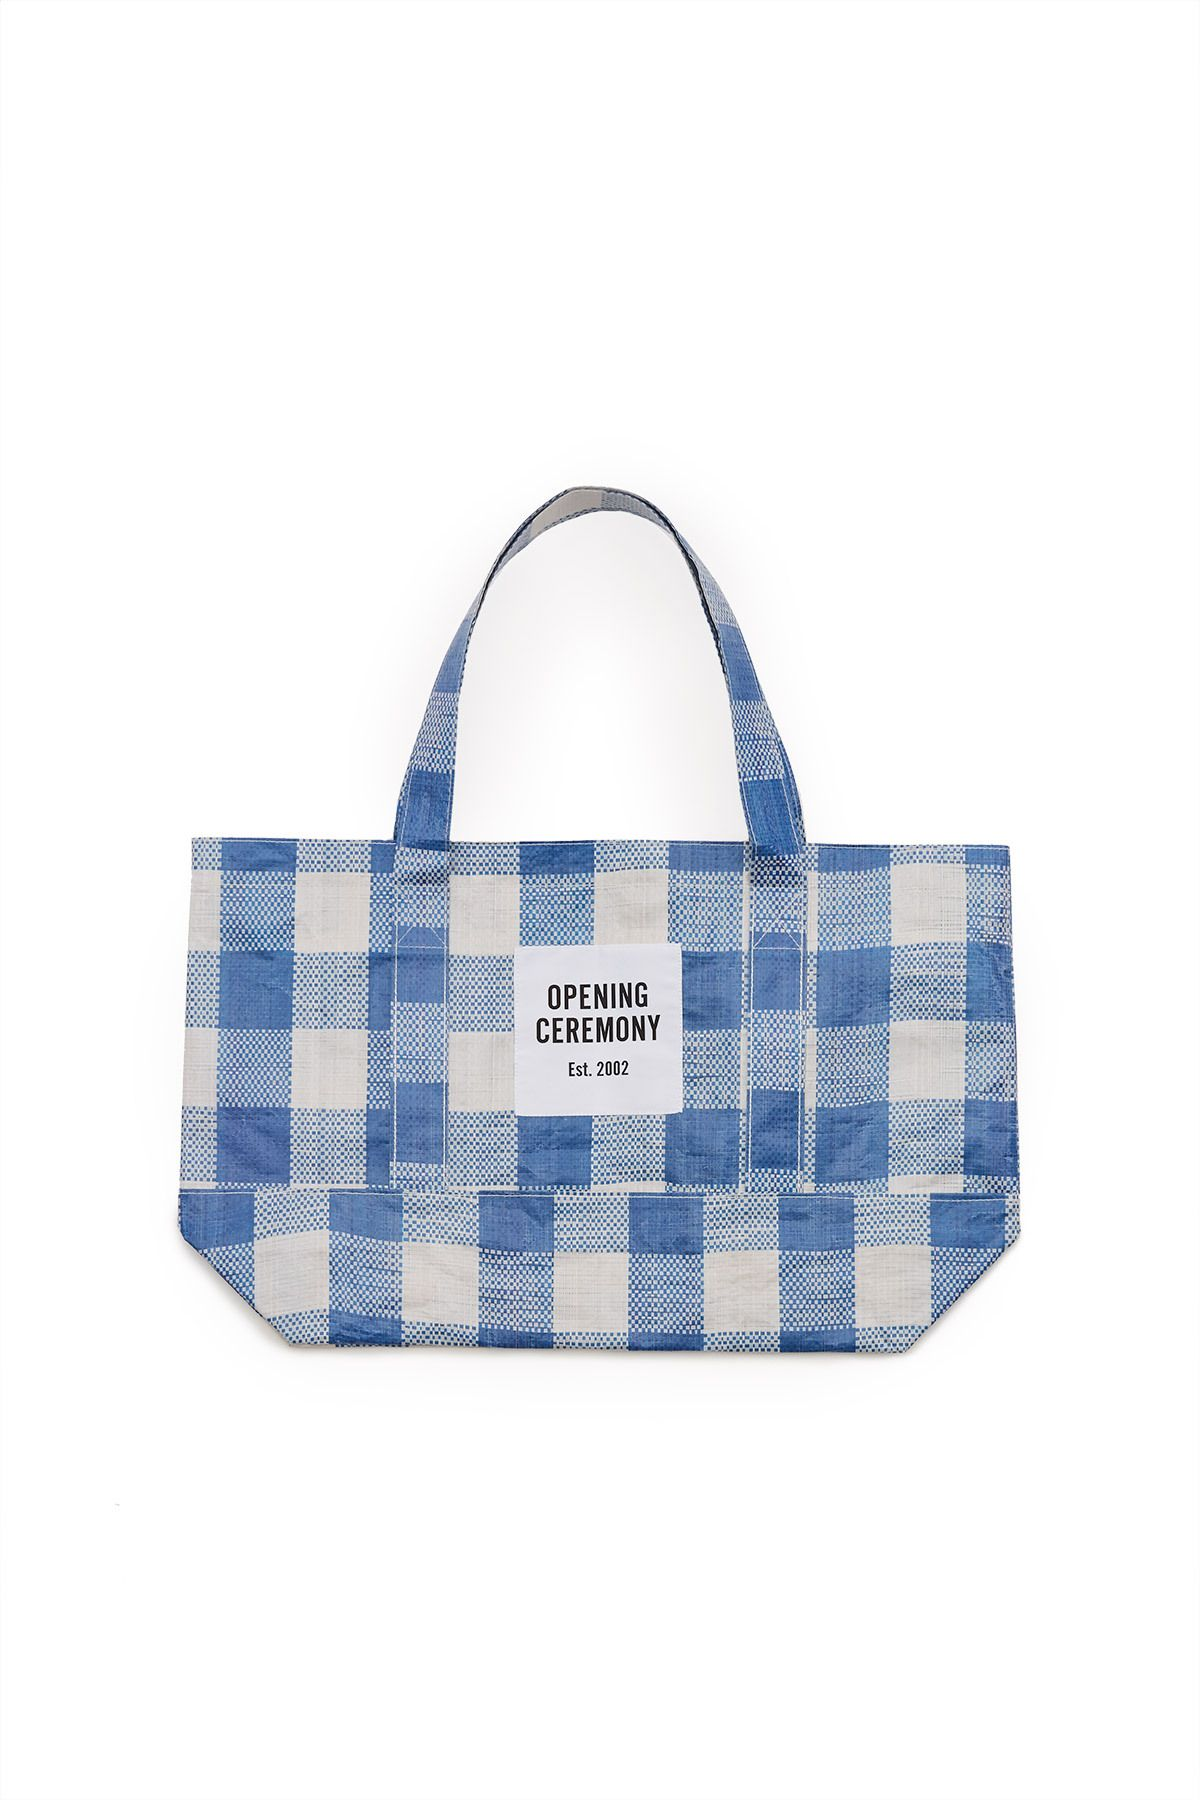 5a96fe7765b1 Opening Ceremony, Gingham Medium Tote OC's signature tote bags are cut from  sturdy but lightweight gingham-printed tarp material. Available in black,  blue, ...